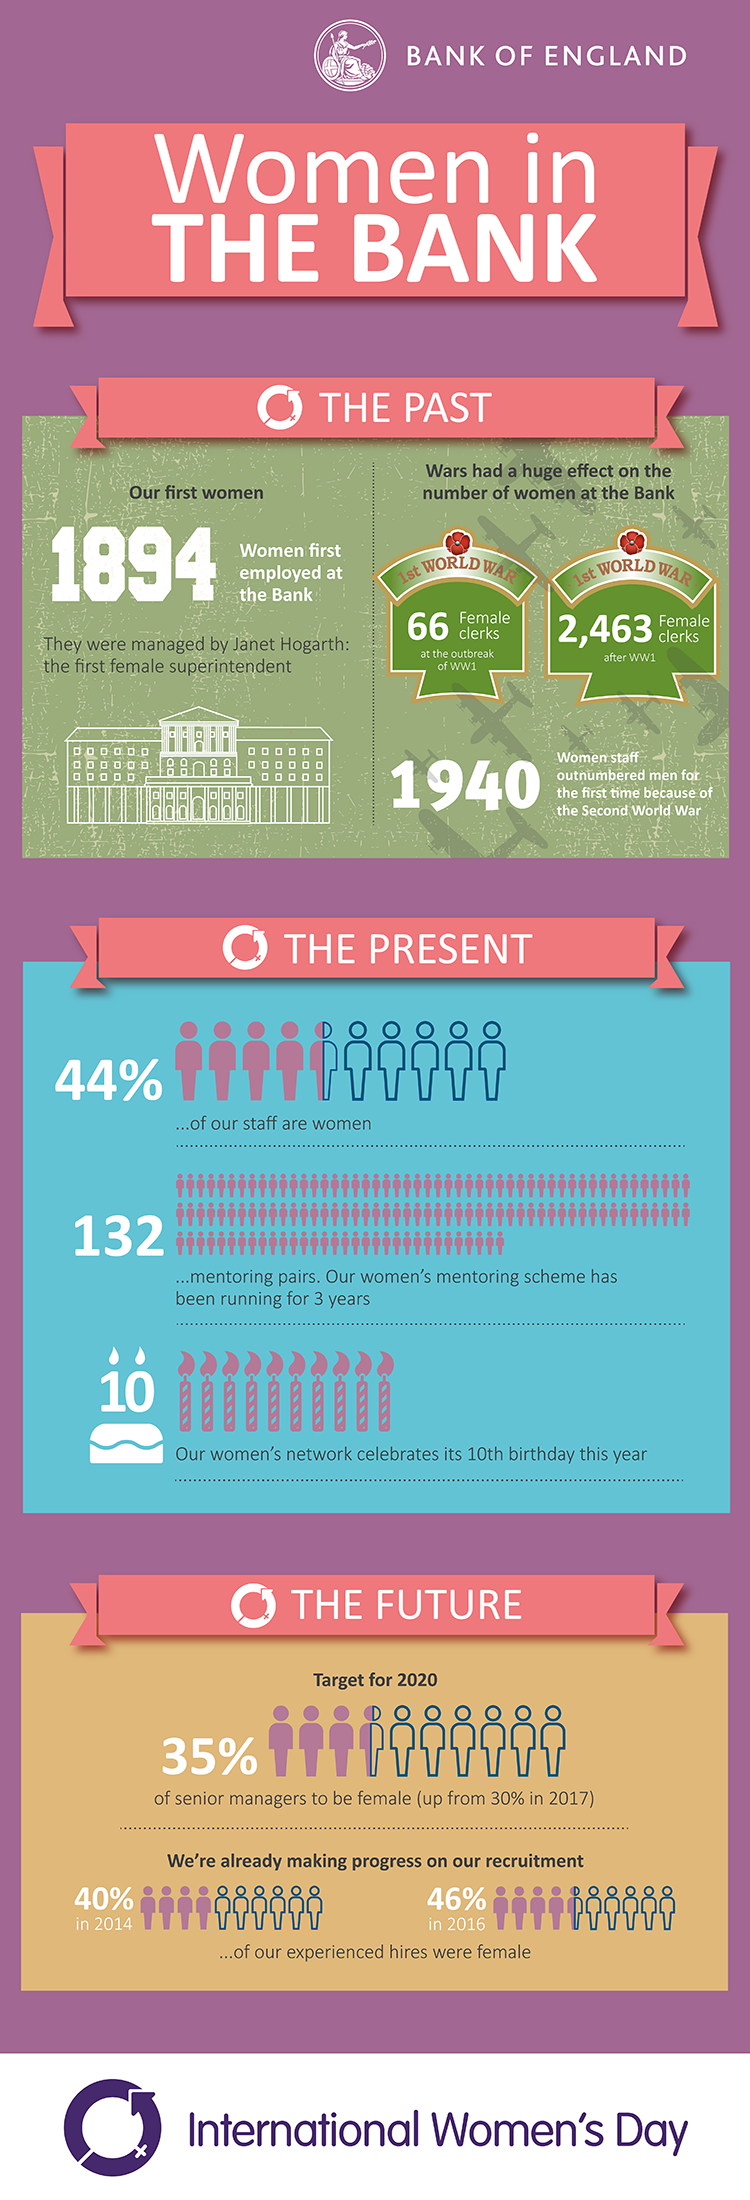 Image of infographic: The Past. Our First Woman: 1894 Women first employed at the Bank. They were managed by Janet Hogarth: the first female superintendent. Wars had a huge effect on the number of women at the Bank. 1st World War: 66 Female clerks at the outbreak of WW1. 1st World War 2463 Female Clerks after WW1. The Present. 44% of our staff are women (stick images of women filled to 44%). 132 mentoring pairs. Our women's mentoring scheme has been running for 3 years (132 stick images of women). Our Women's network celebrates its 10th birthday this year (Image of 10 integrated into a birthday cake with birthday candles). The Future. Target for 2020: 35% of senior managers to be female (up from 30% in 2017) (image of female stick figures filled to 35%). We're already making progress on our recruitment. 40% in 2014 of our experienced hires were female (female stick figures filled to 40%). 46% in 2016 of our experience hires were female (female stick figures filled to 46%)